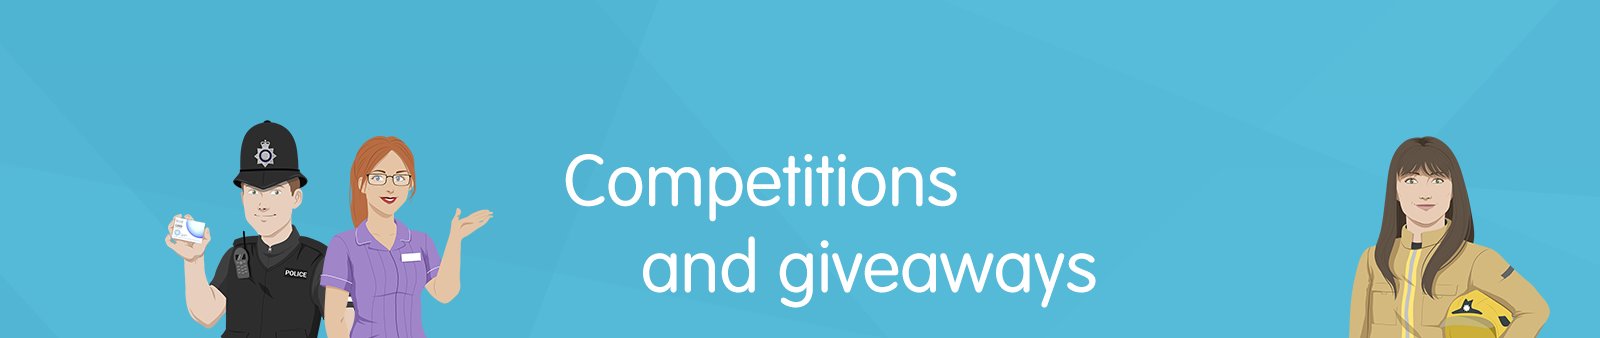 Competitions Header